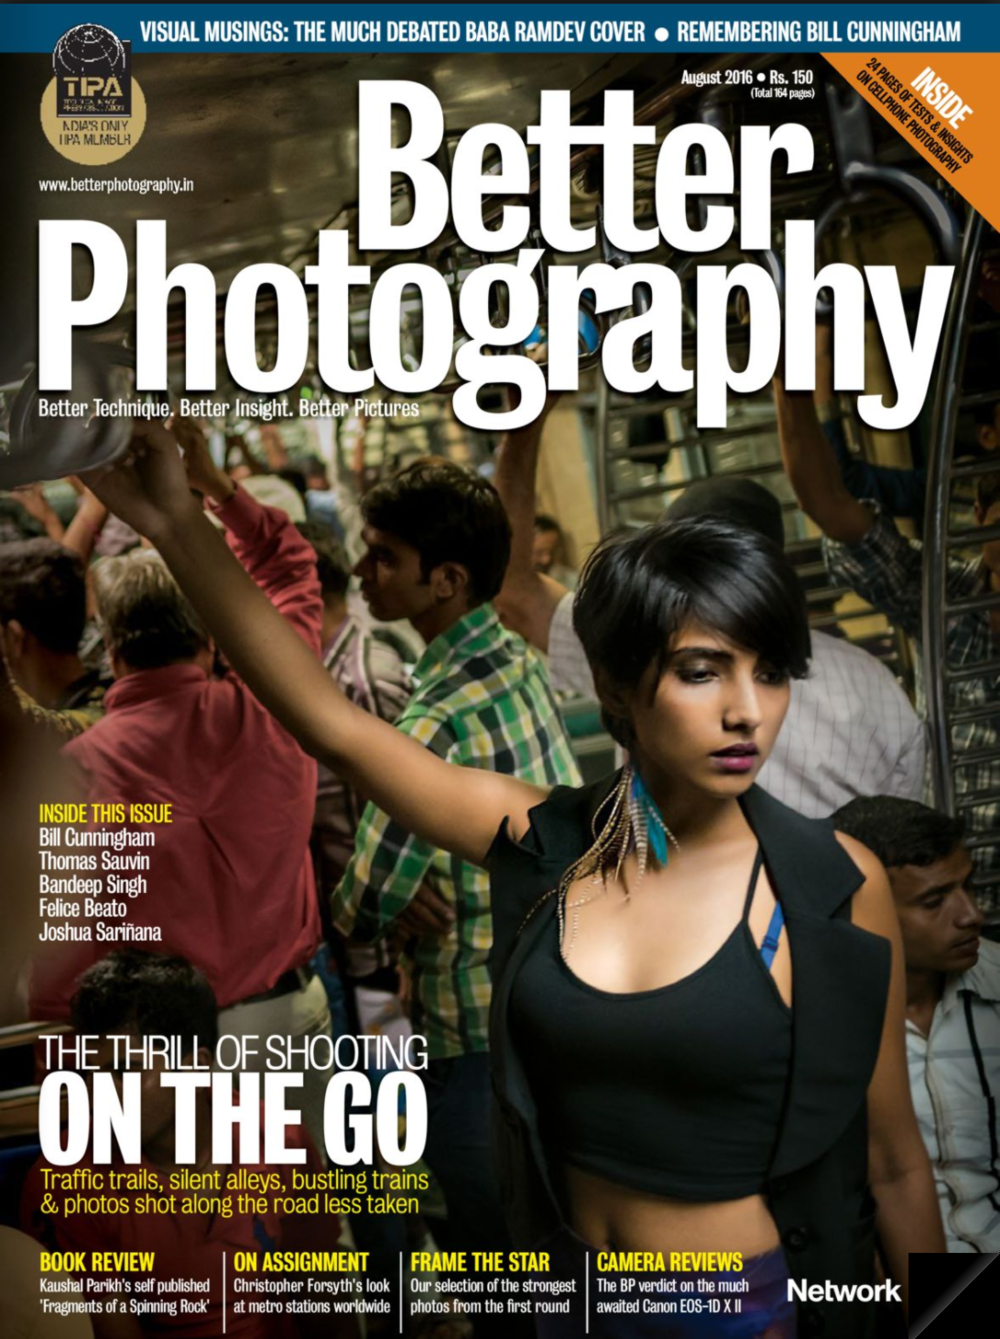 Better Photography - August Issue, 2016